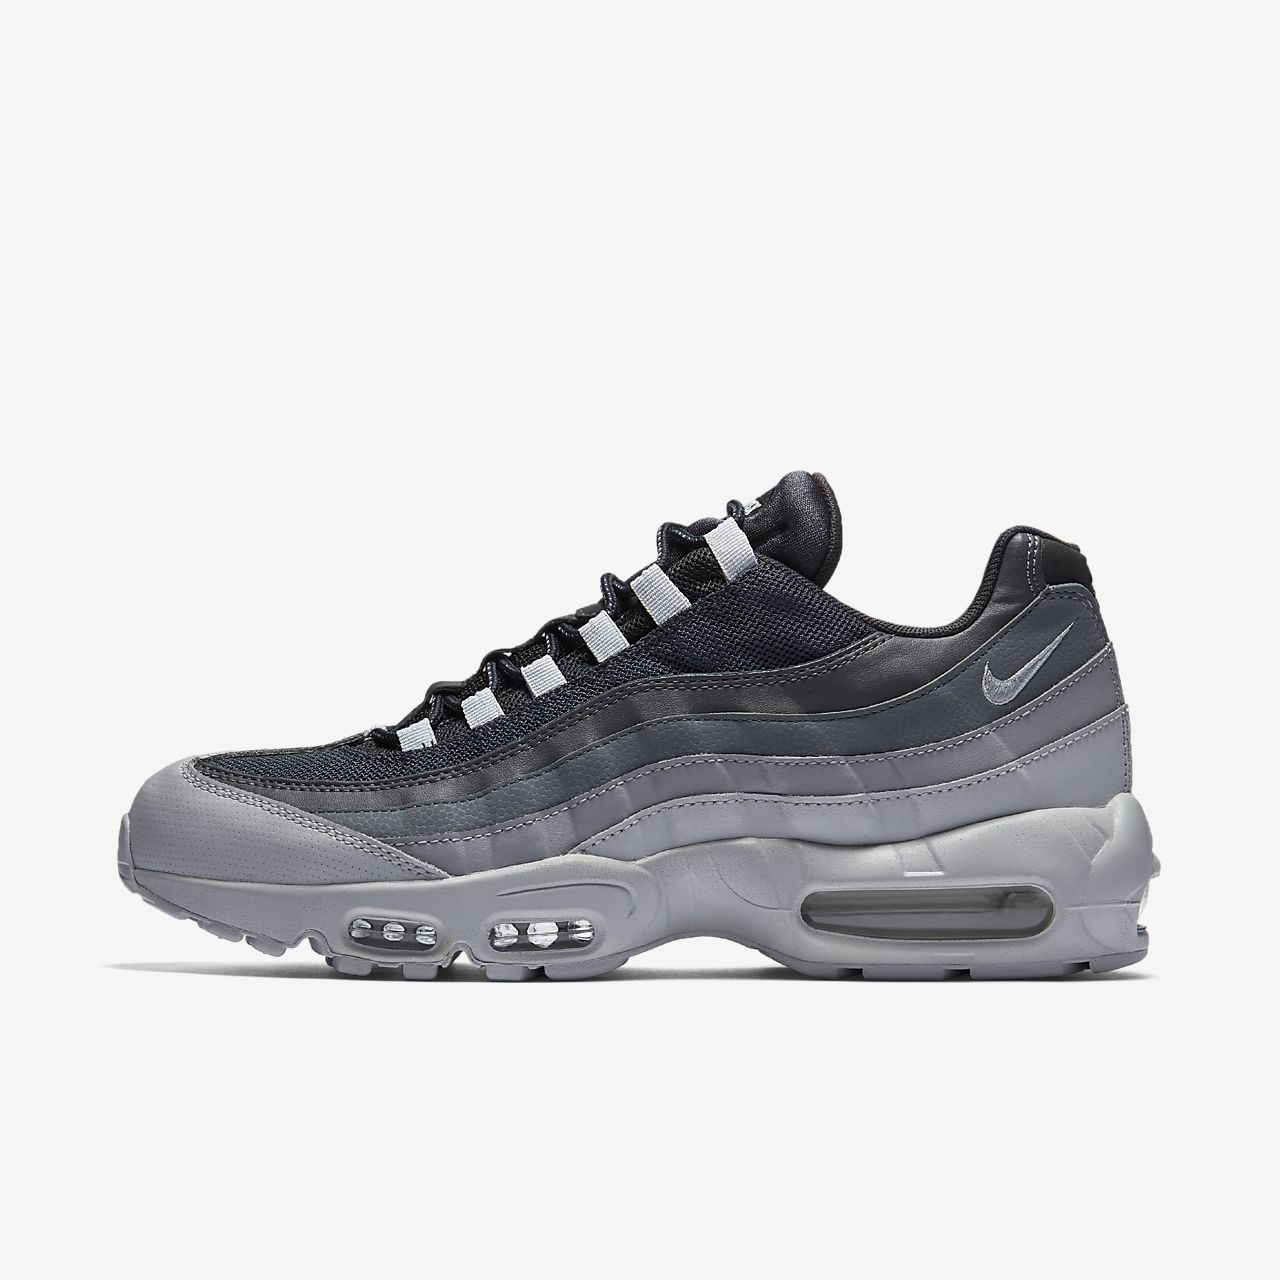 Low Resolution Nike Air Max 95 Essential Men's Shoe Nike Air Max 95  Essential Men's Shoe